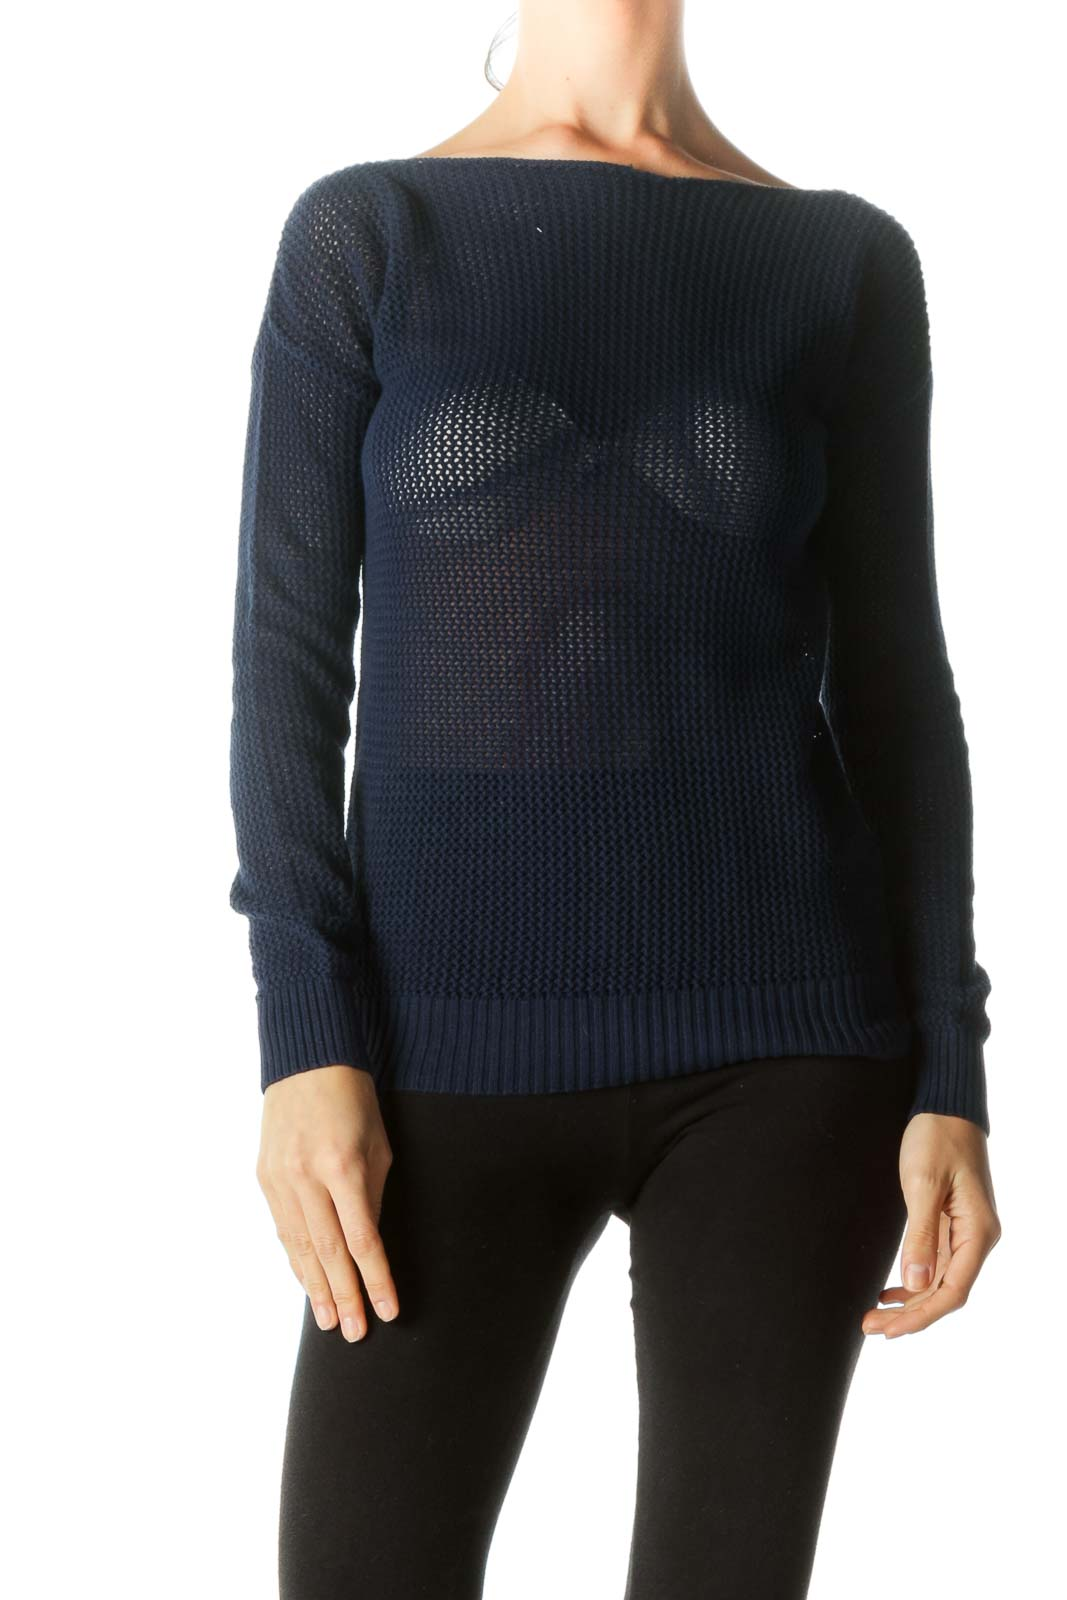 Blue Boat Neck See-Through Knit Top